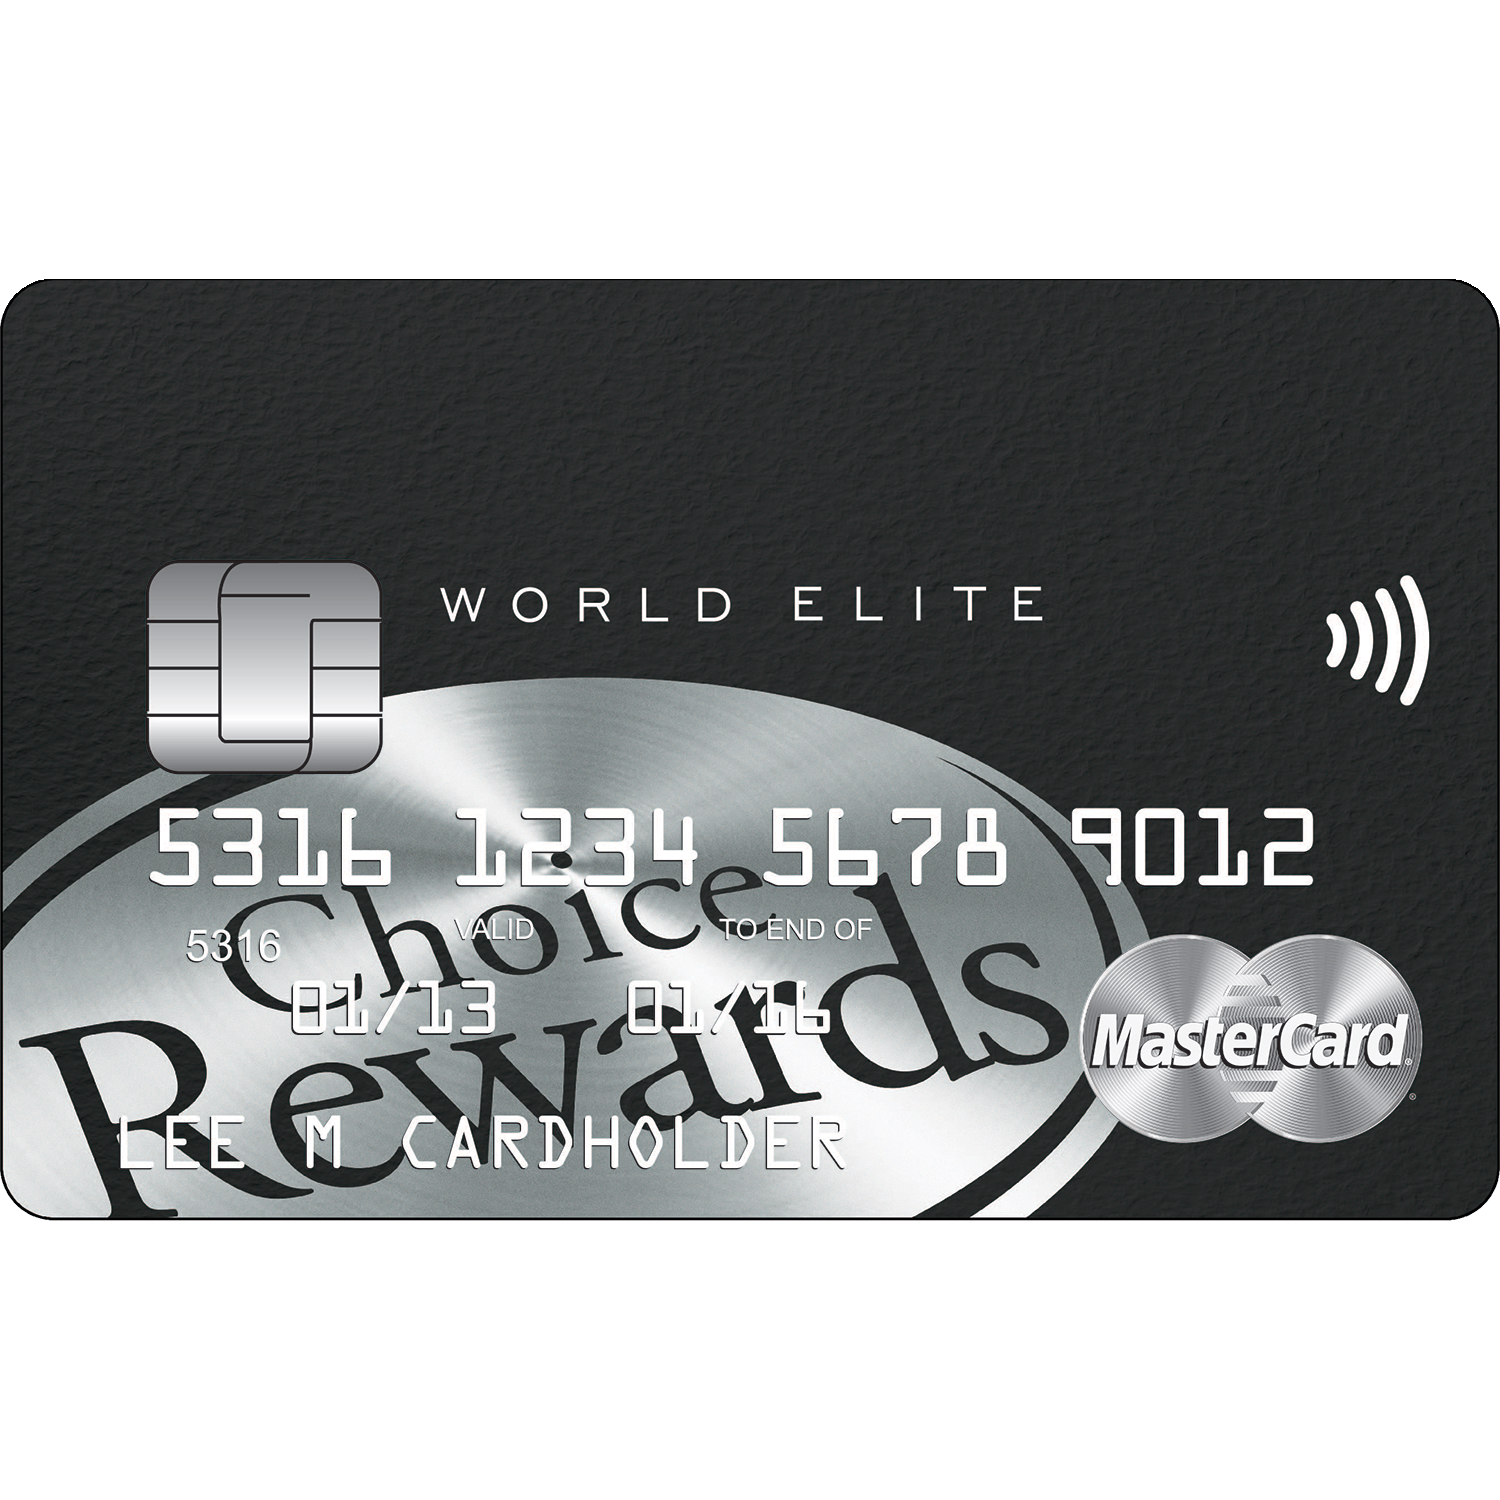 Affinity Credit Union Choice Rewards World Elite Mastercard Login | Make a Payment